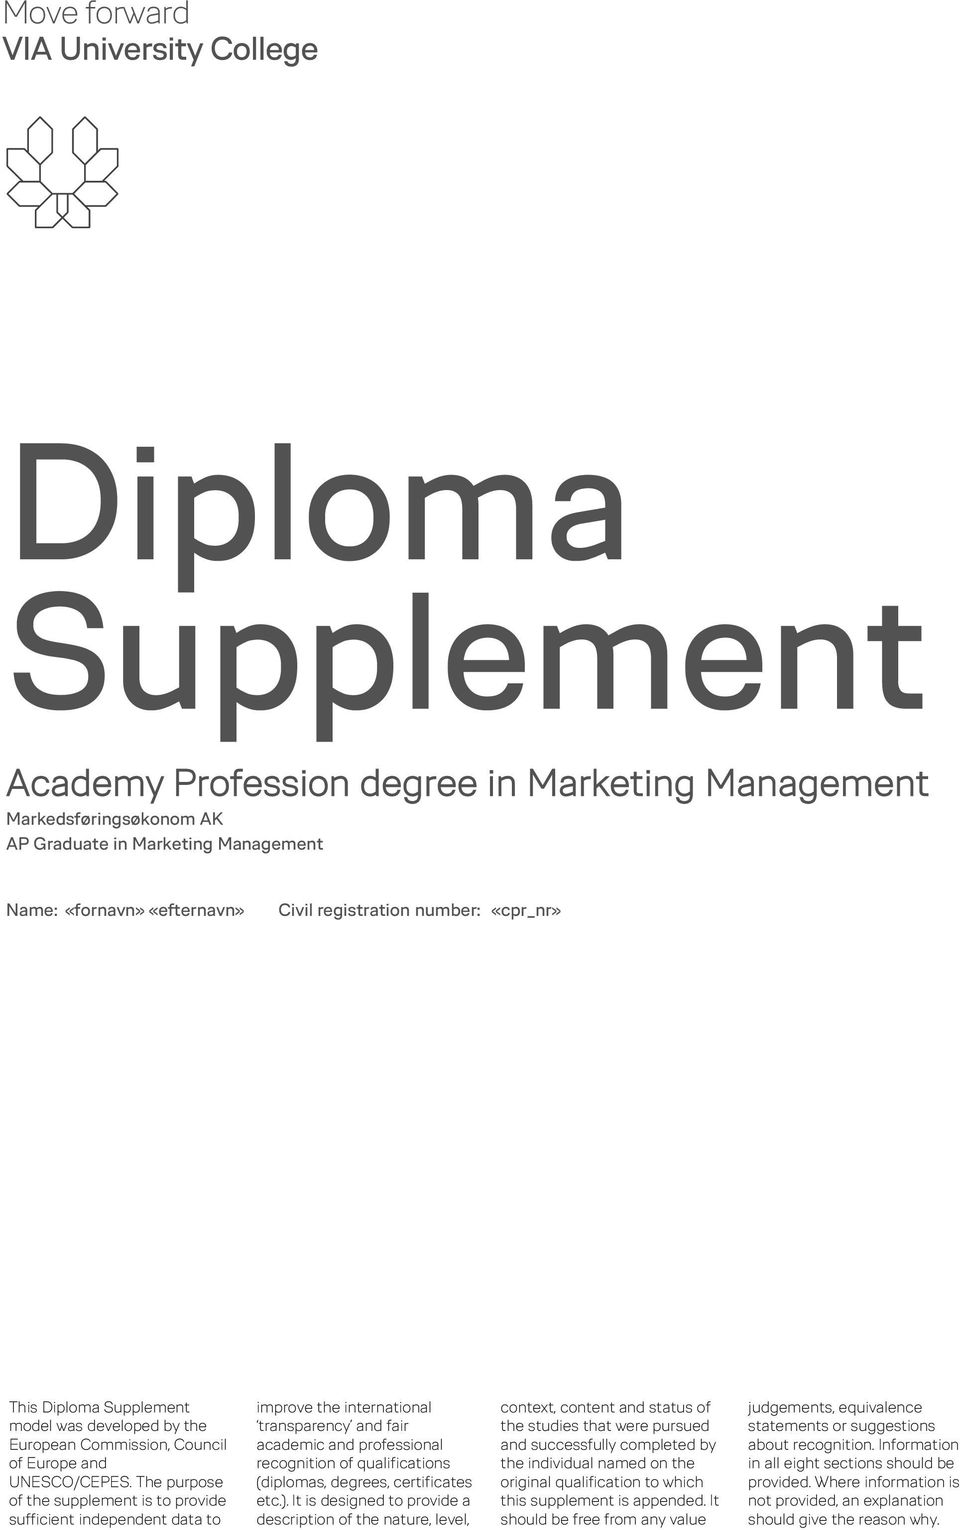 The purpose of the supplement is to provide sufficient independent data to improve the international transparency and fair academic and professional recognition of qualifications (diplomas, degrees,